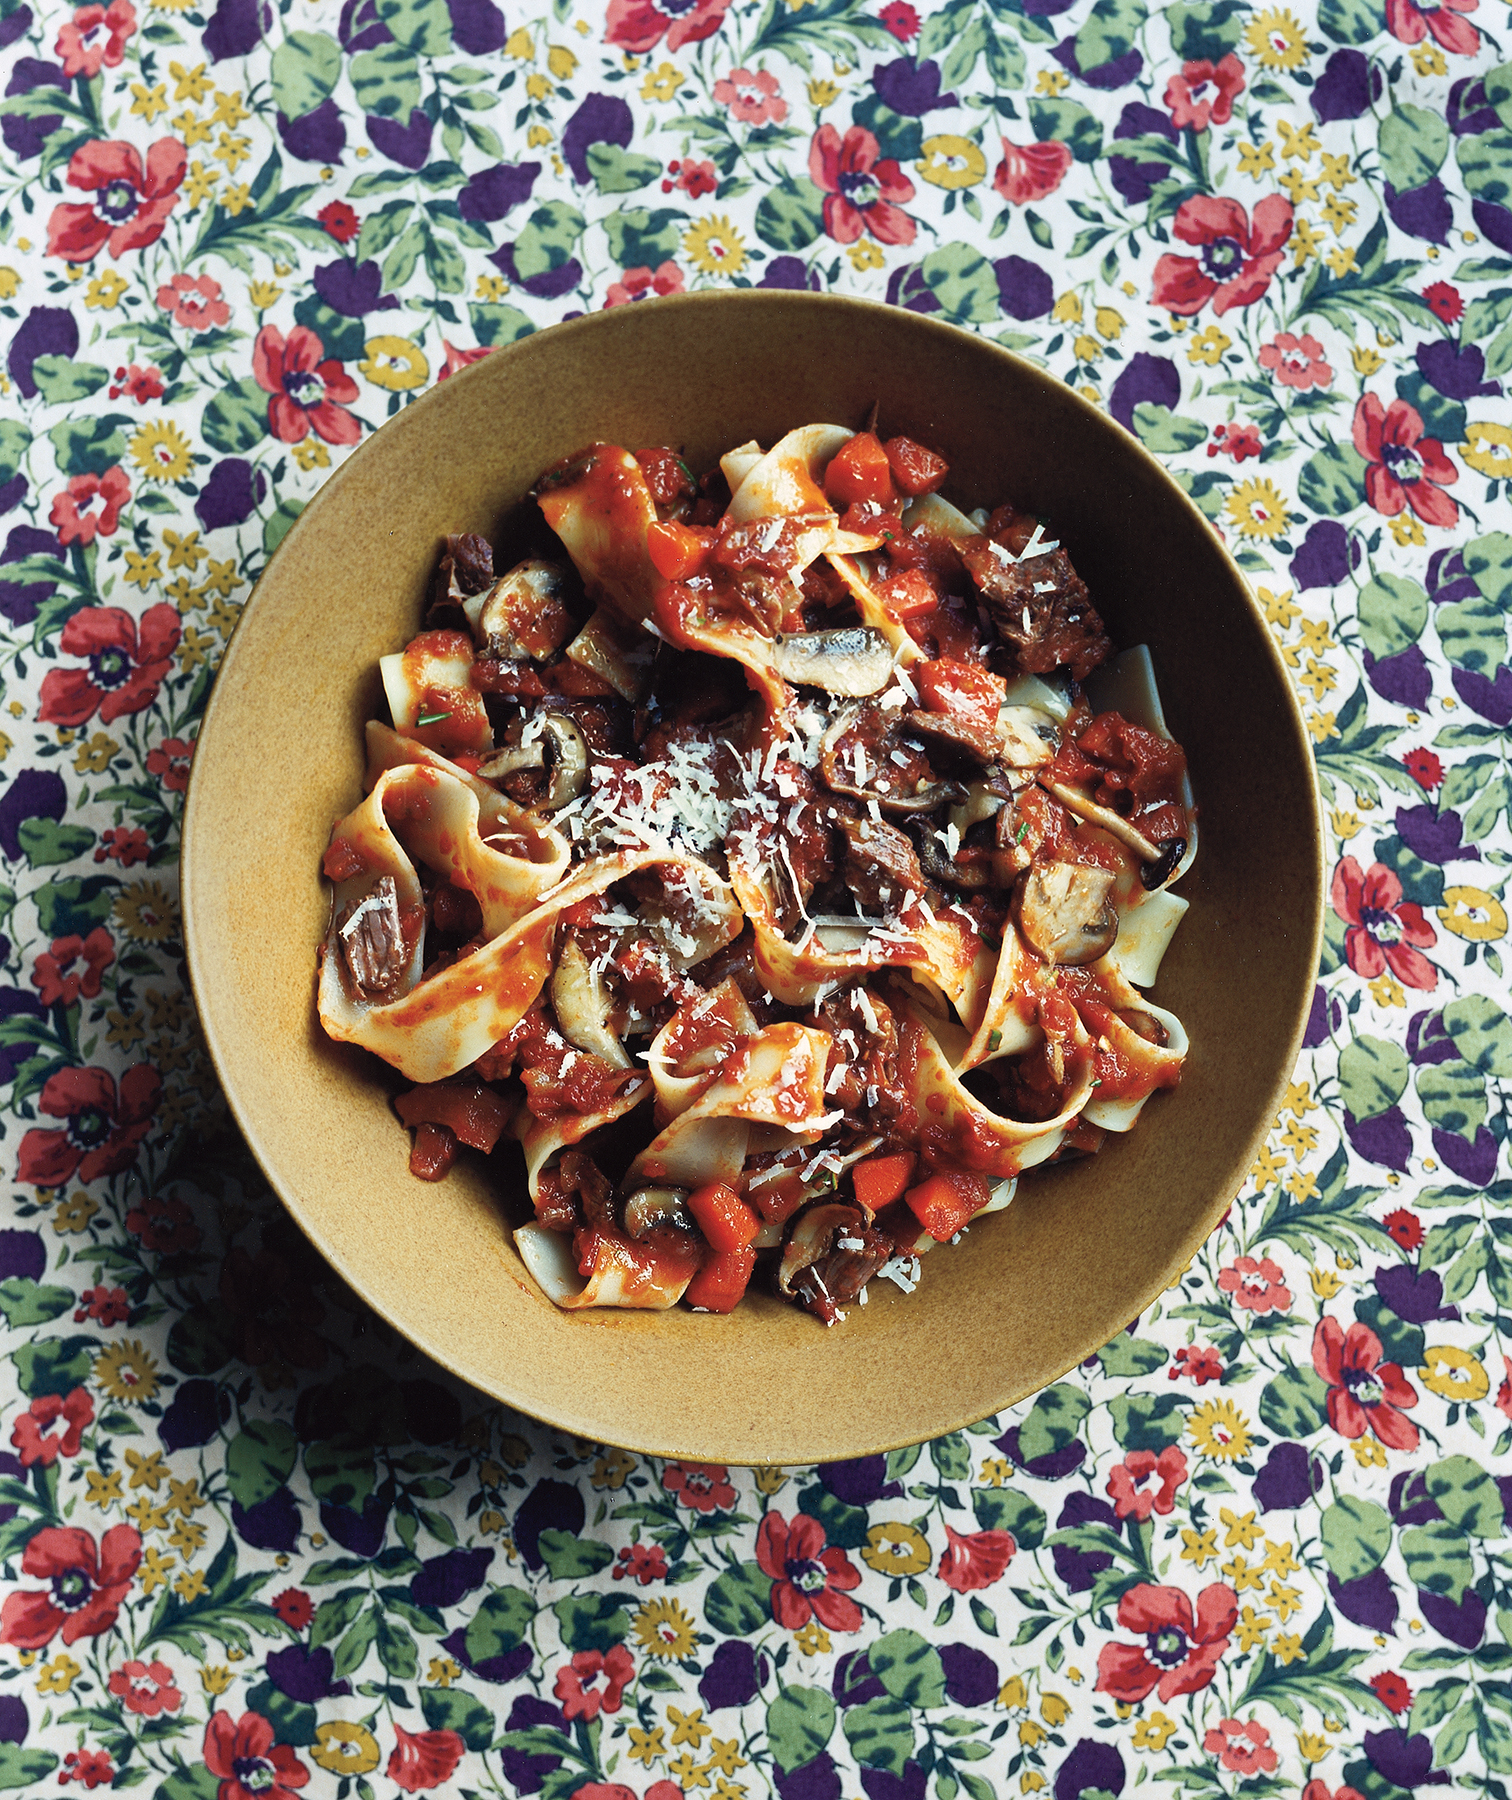 Pappardelle with beef and mushroom ragu